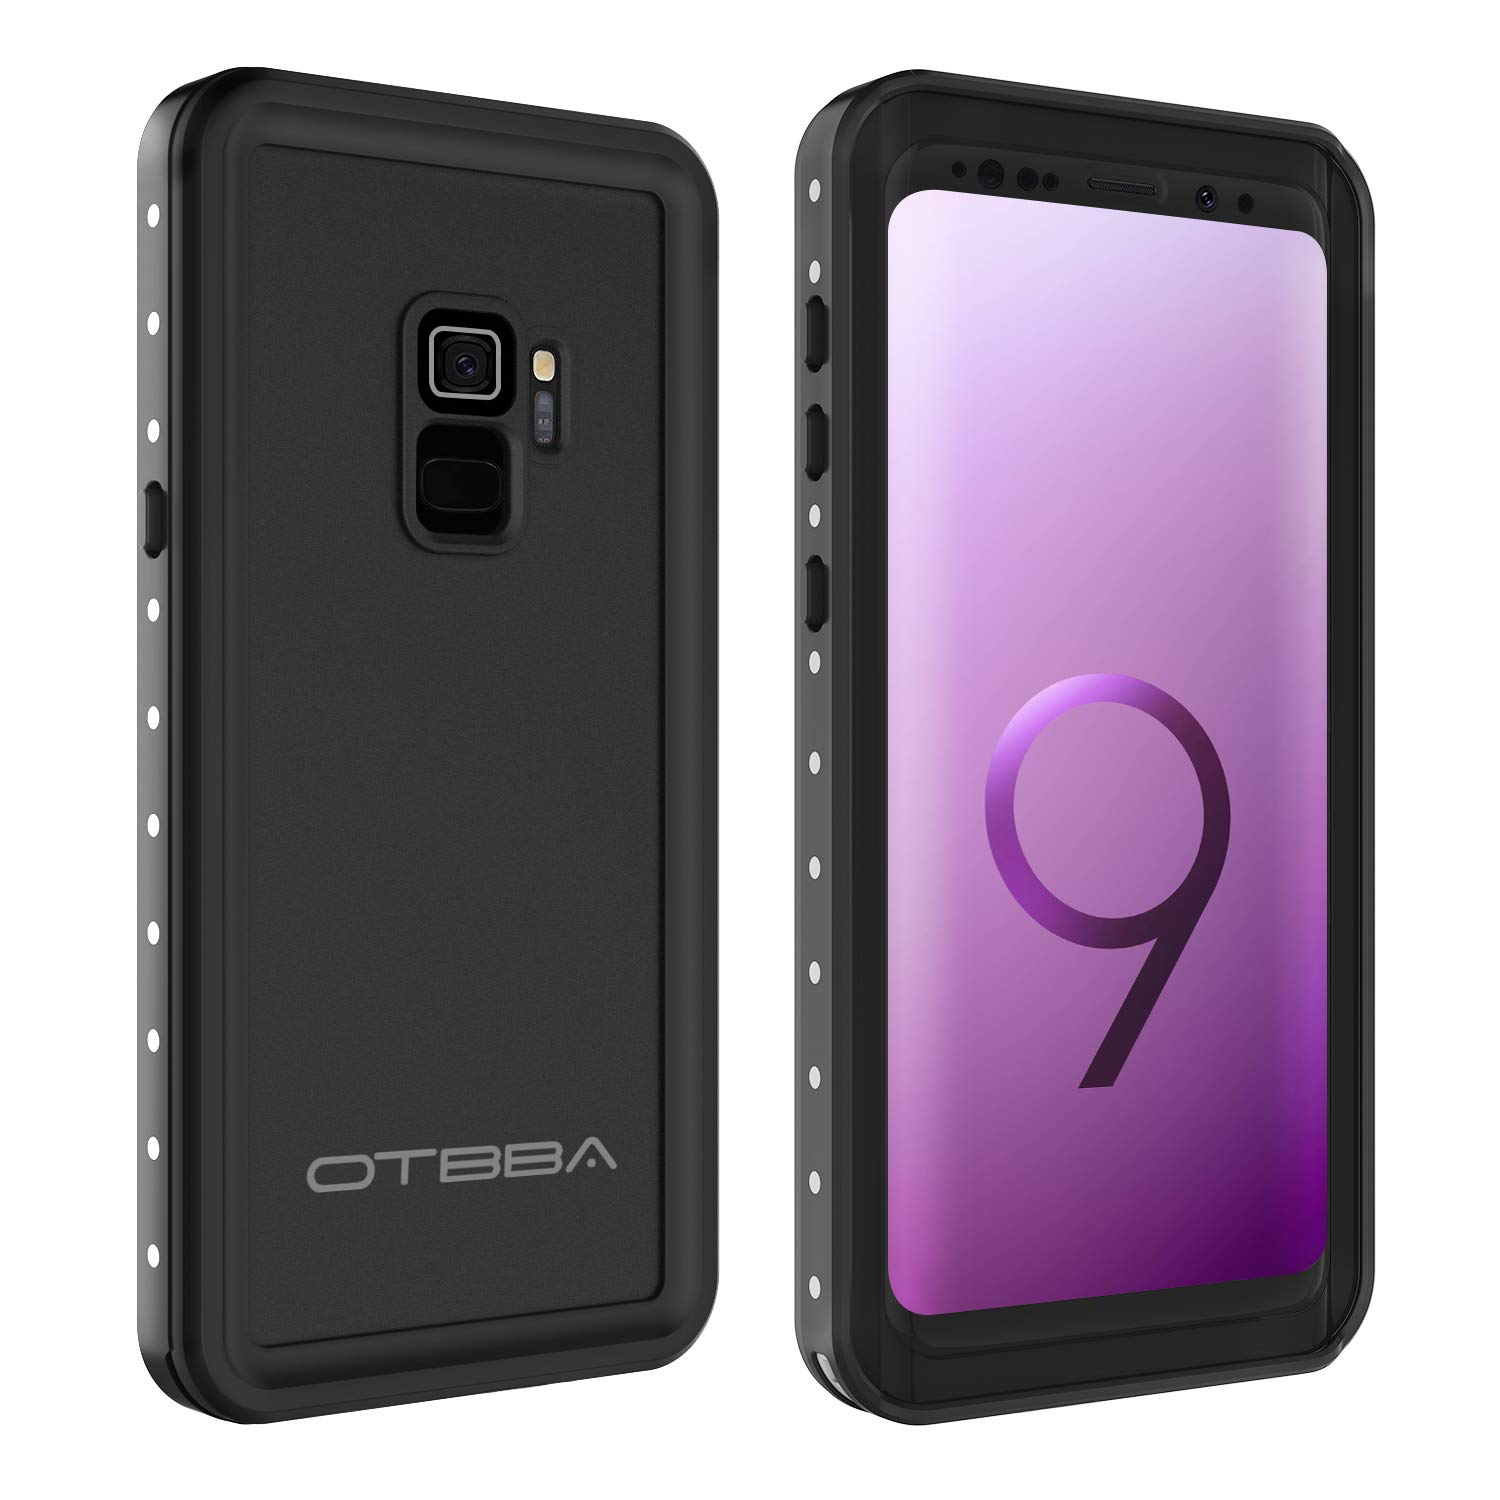 OTBBA Galaxy S9 Waterproof Case,Shockproof Protective Case with Dirtproof Snowproof Full Body Cover for Galaxy S9 (Black)